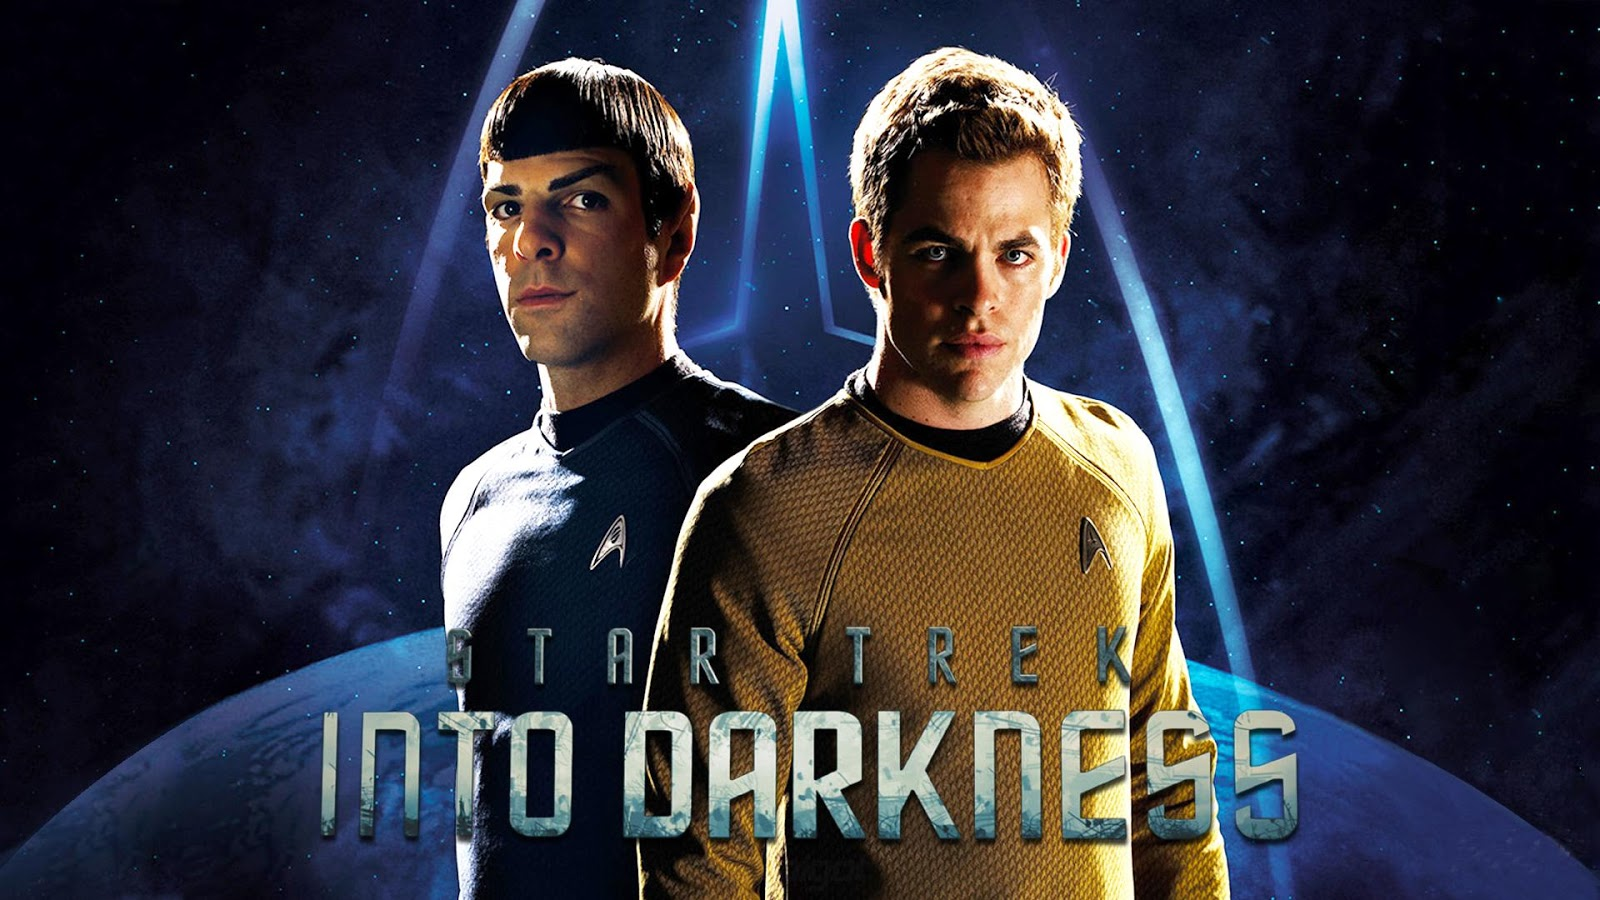 Movie News: More Star Trek Into Darkness posters ...